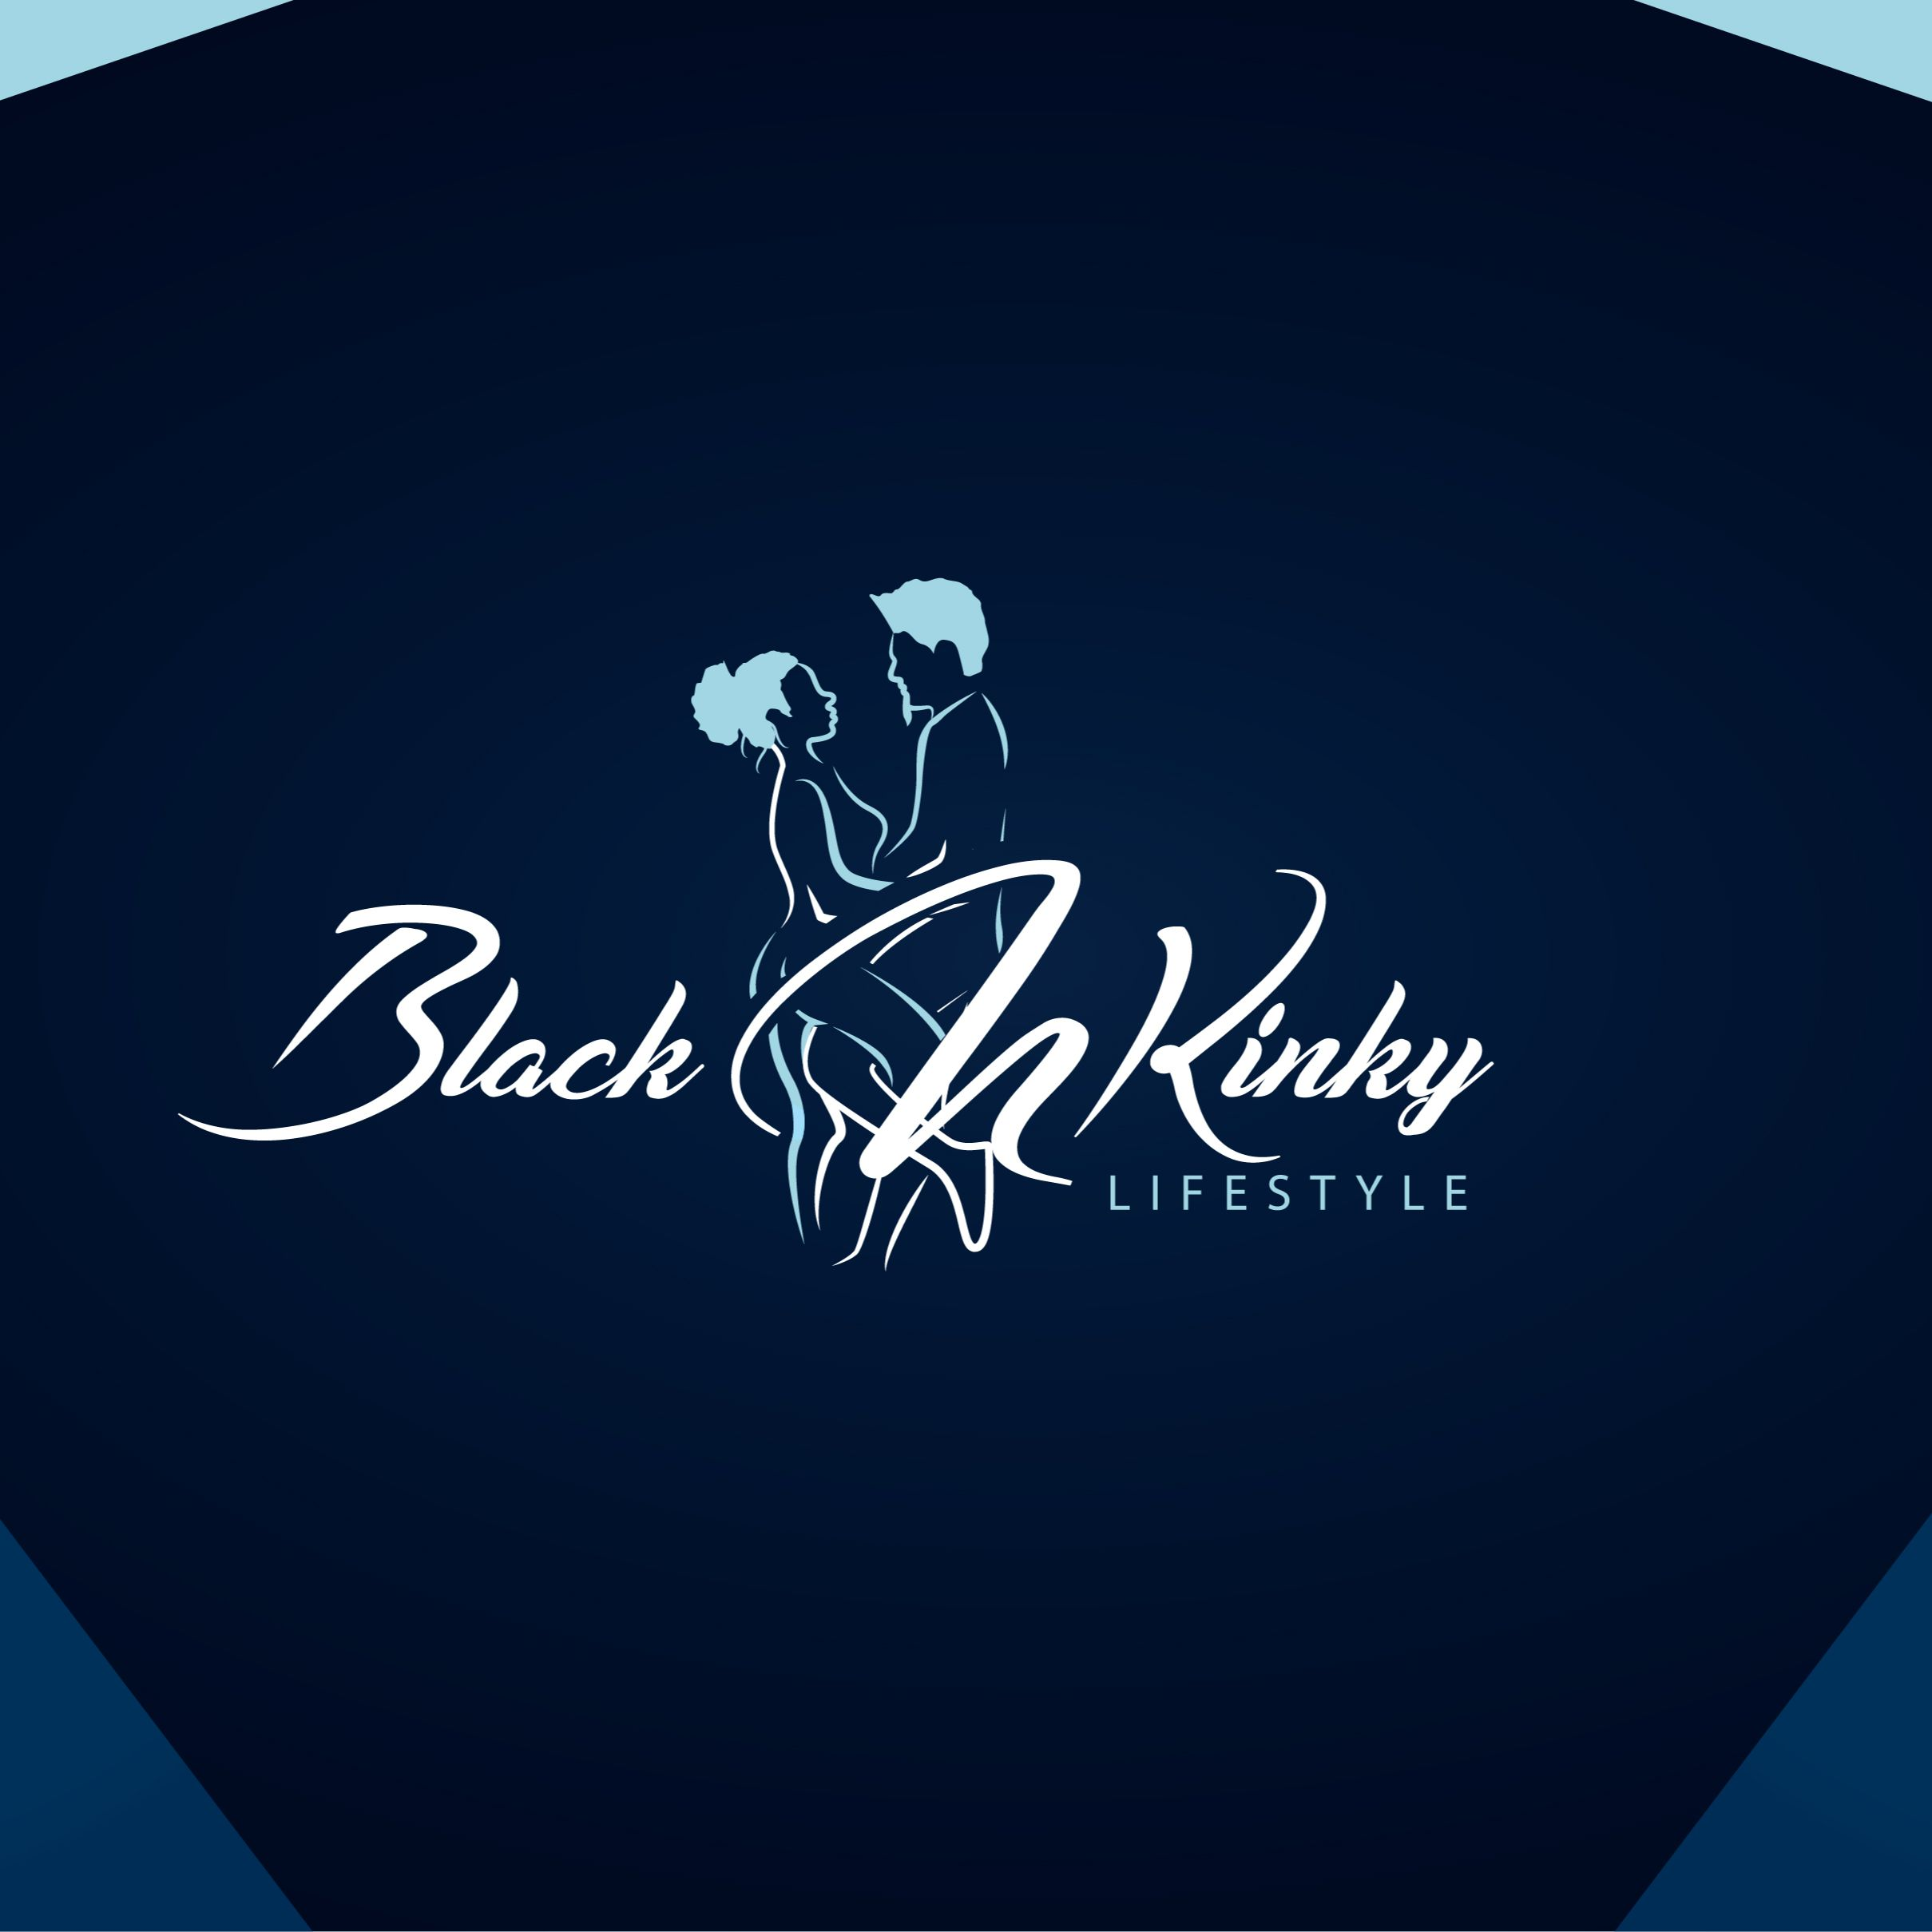 The Black n Kinky Lifestyle: A Swinger's Podcast